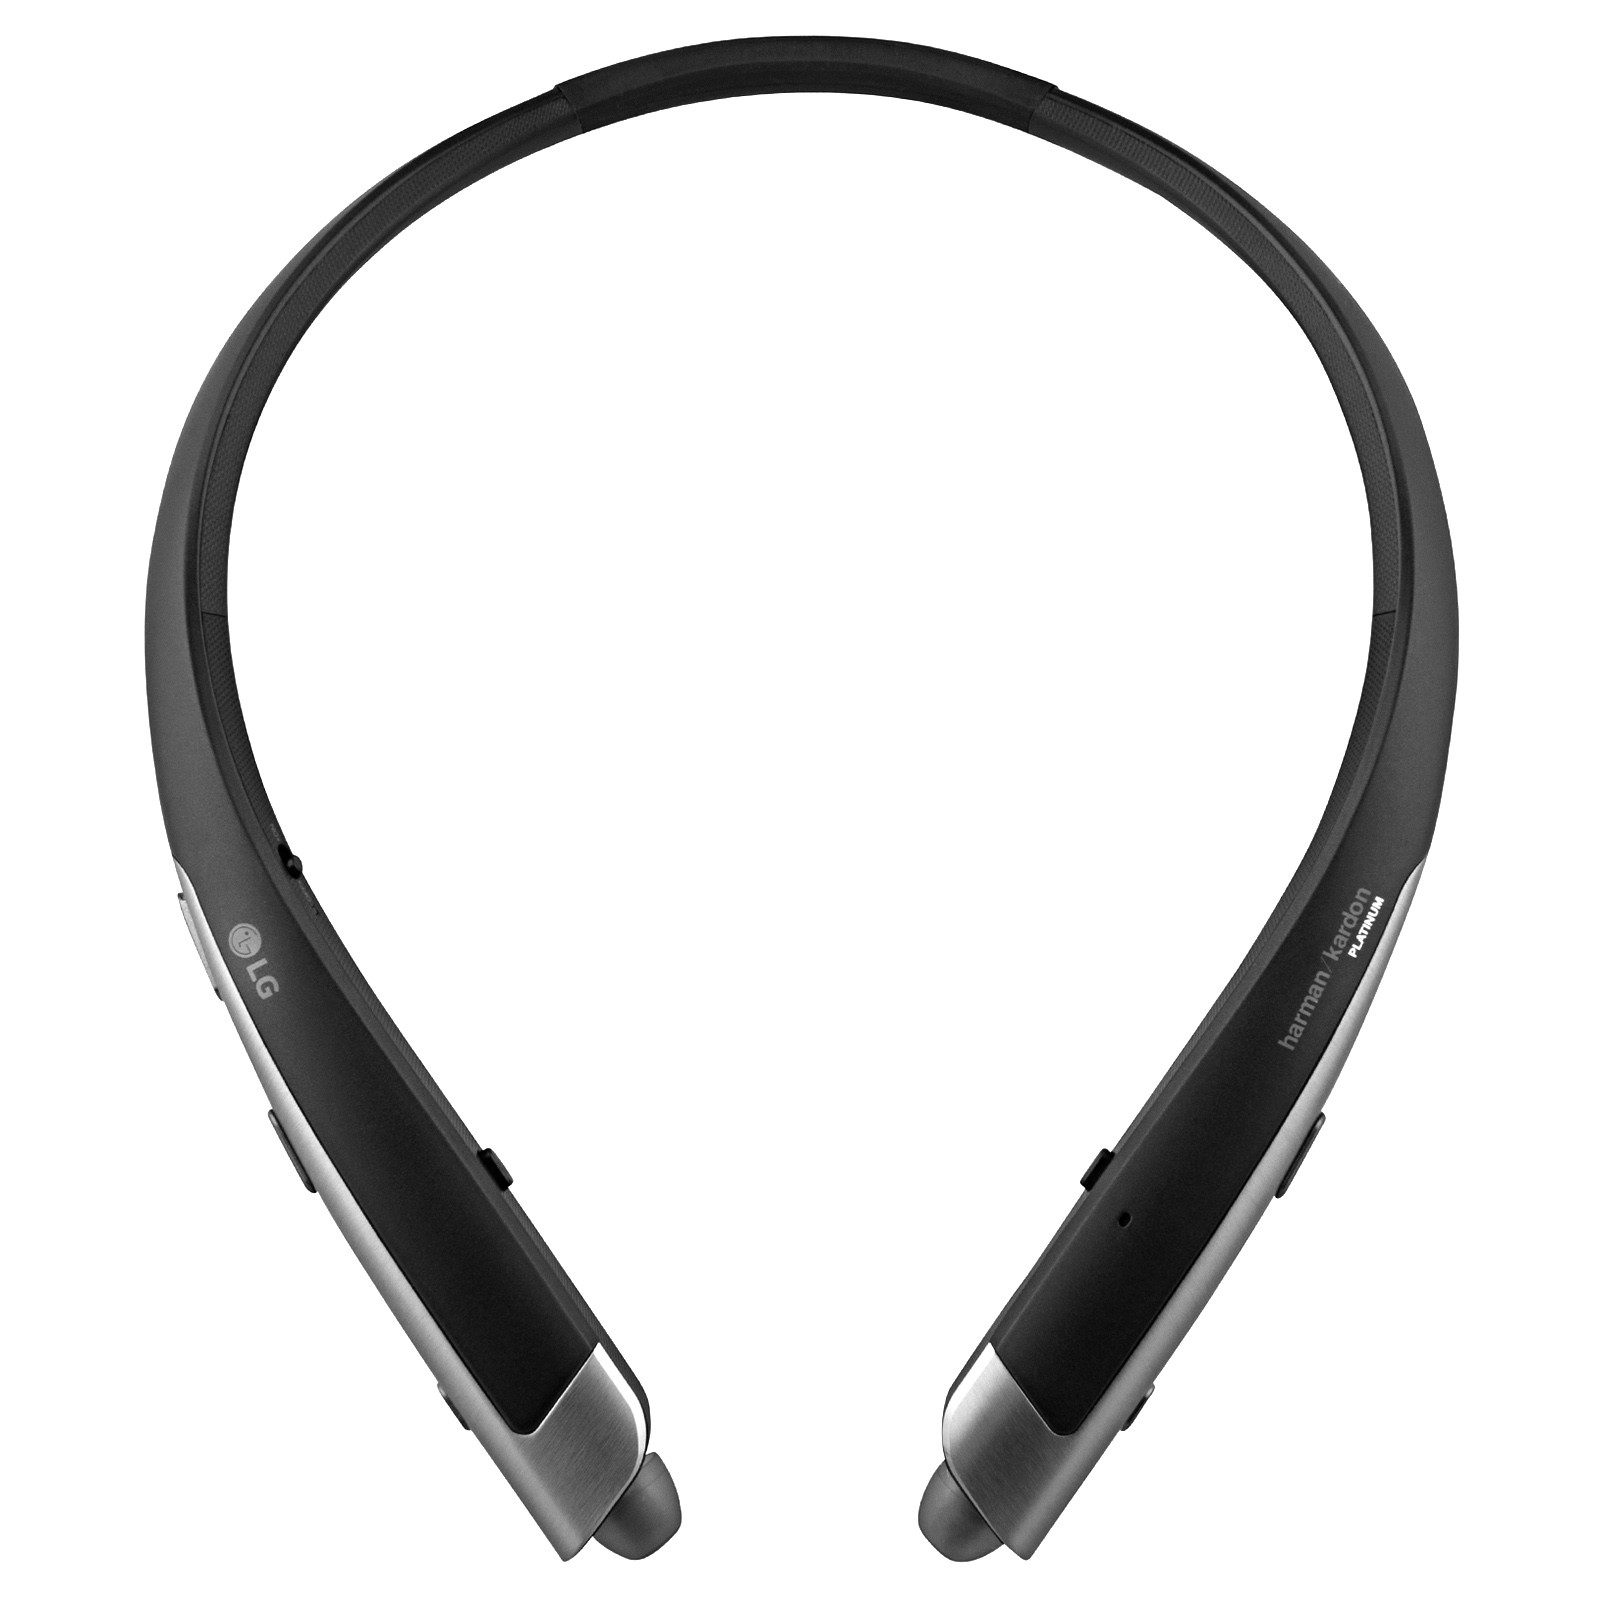 LG HBS-1100 Bluetooth Stereo Headset by LG